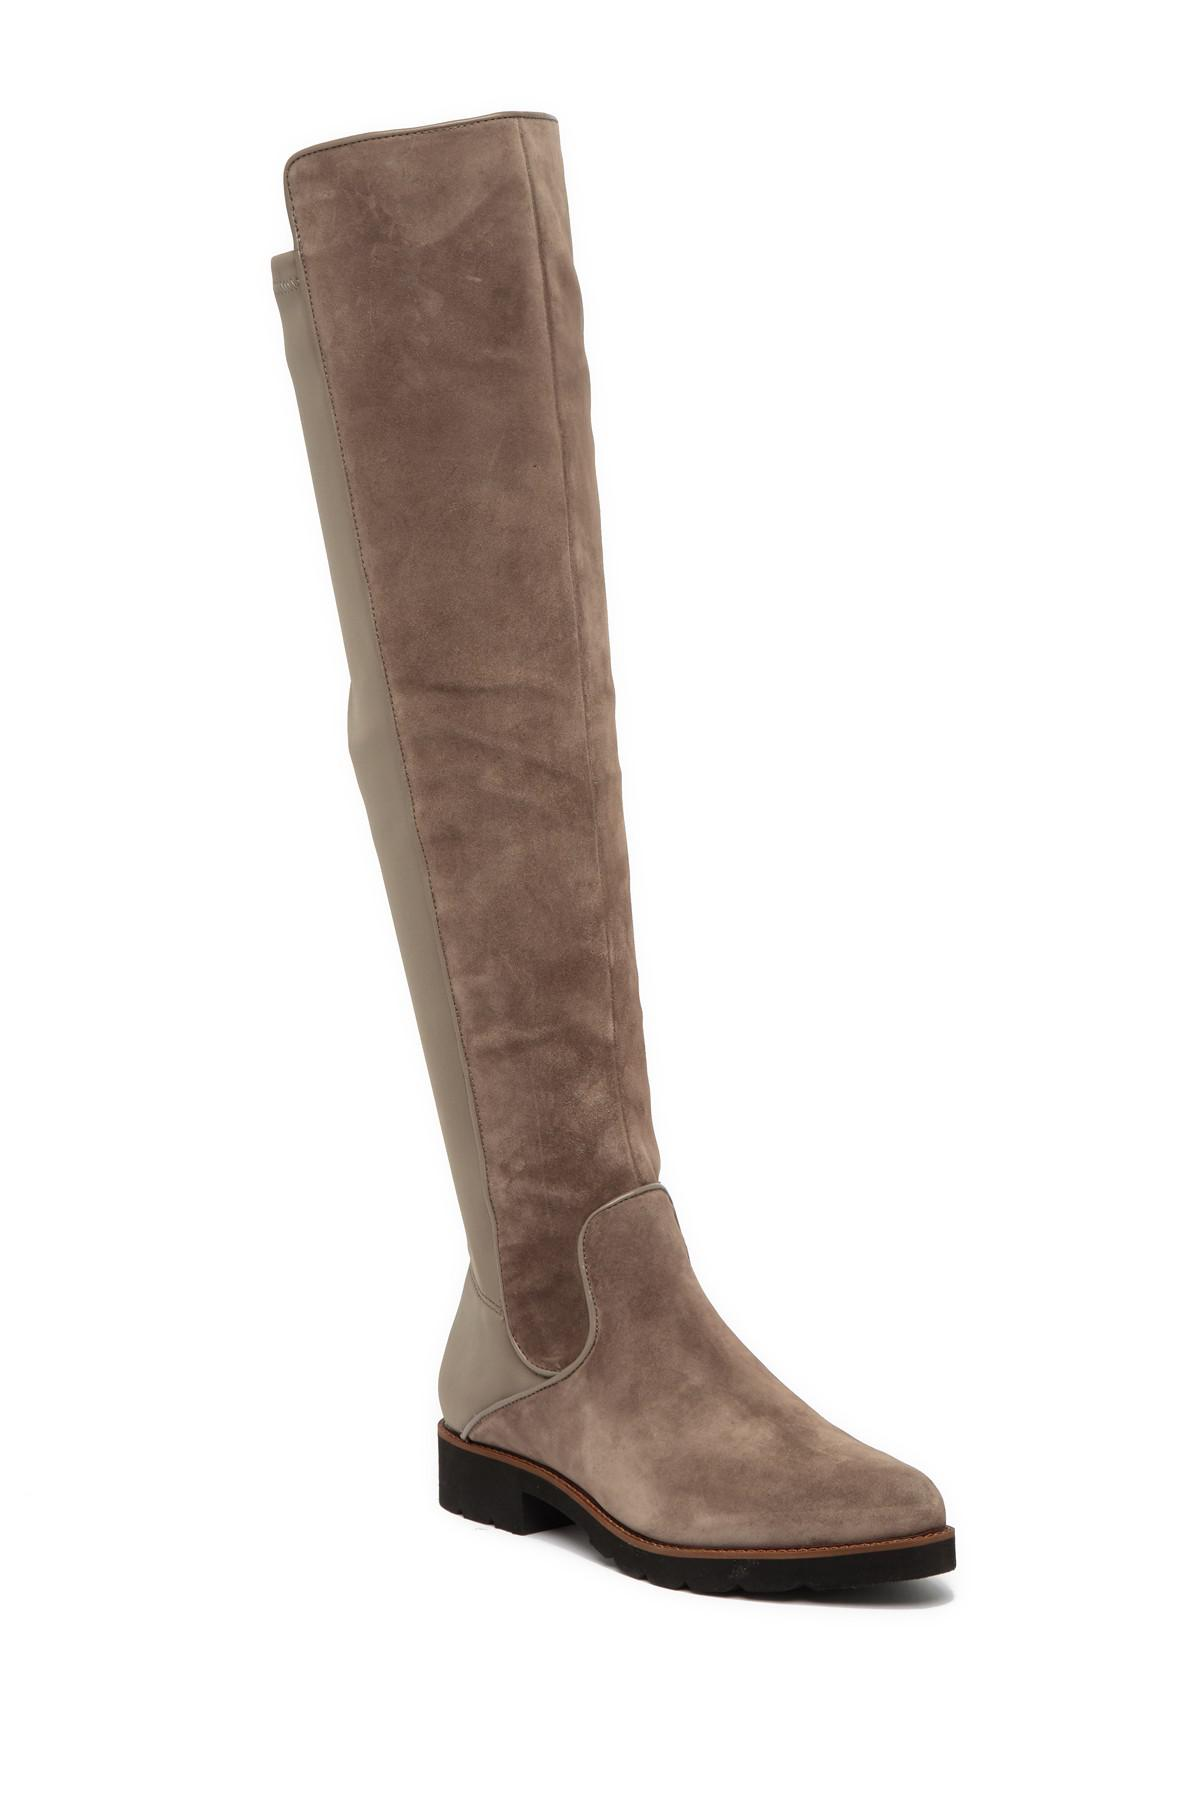 32b8bab9349 Lyst - Franco Sarto Benner Leather Over-the-knee Boot in Brown